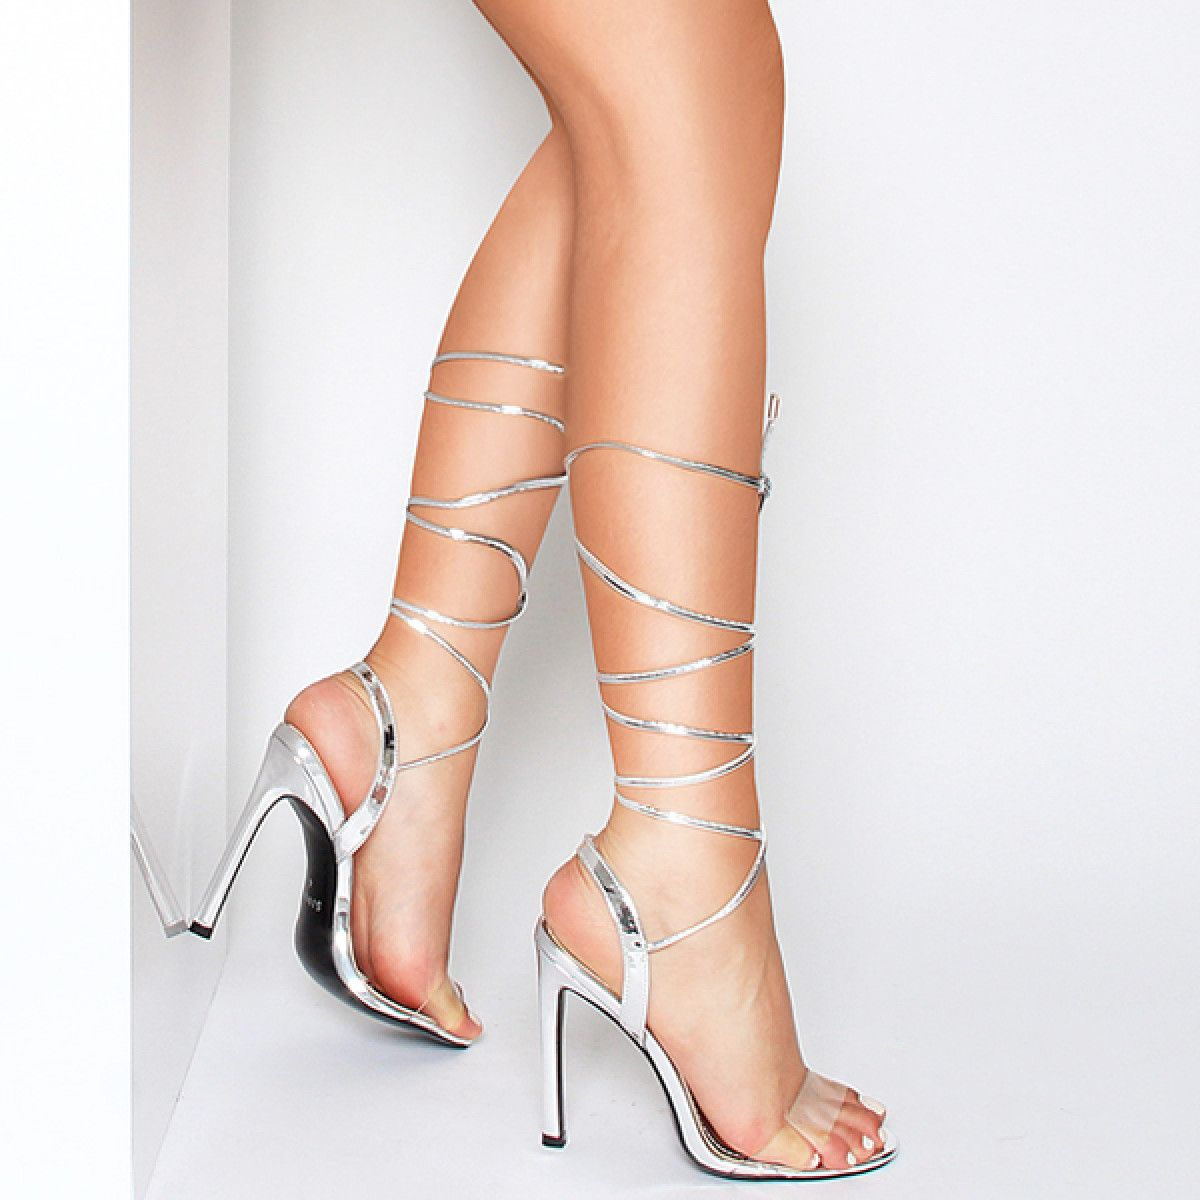 Clear strap heels, Heels, Prom shoes silver